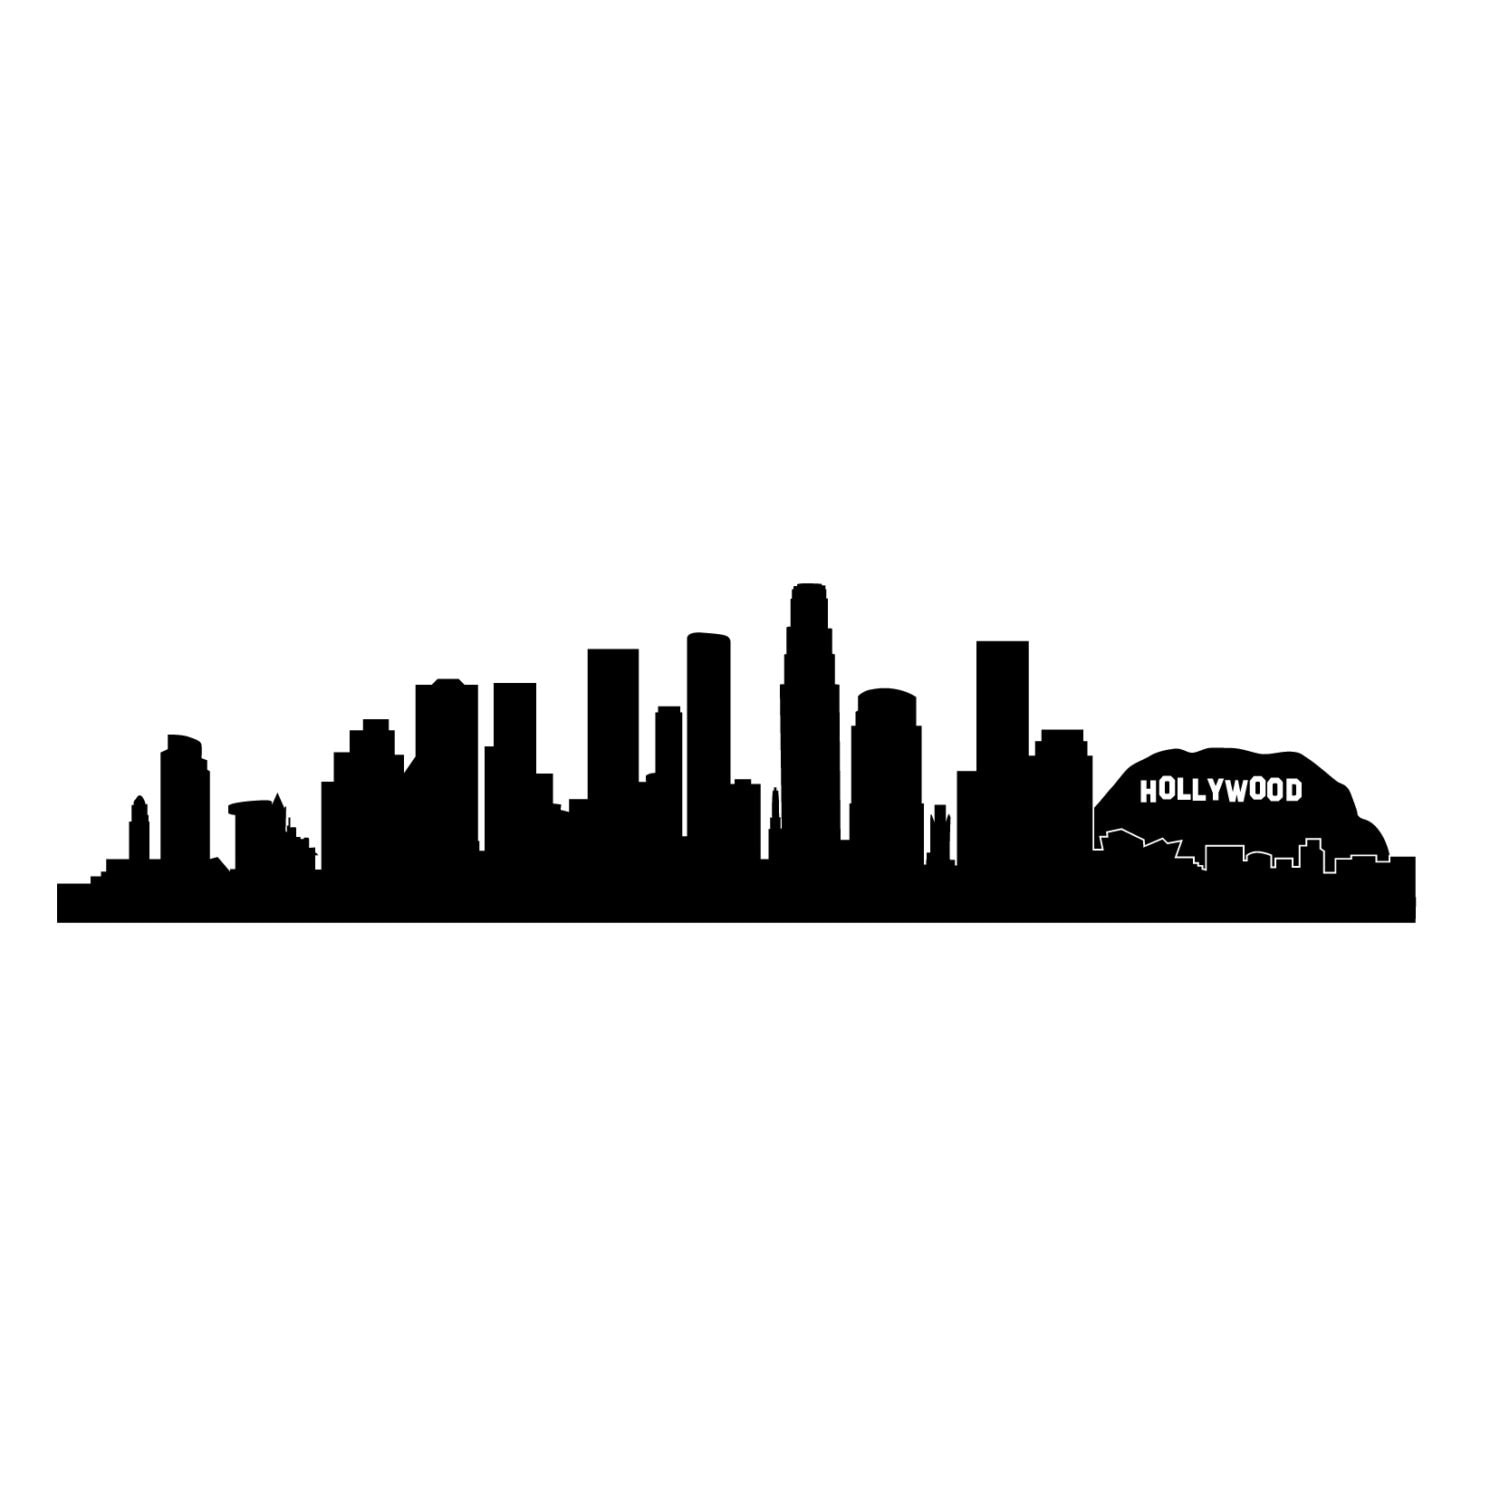 Cityscape Wall Stickers Los Angeles La Hollywood City Skyline Silhouette Wall Decal